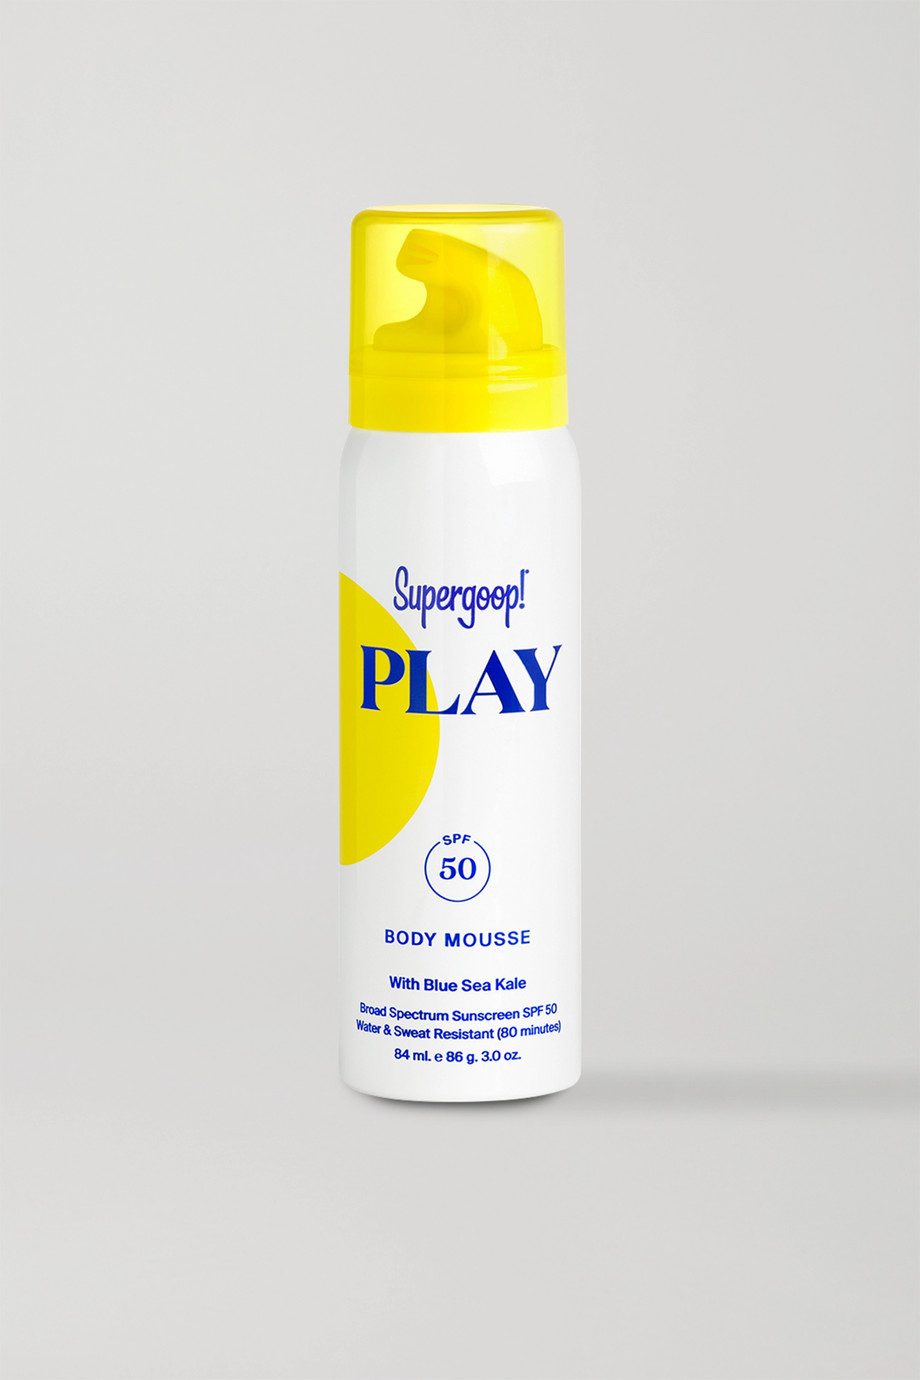 Supergoop! PLAY Body Mousse SPF50, 84ml